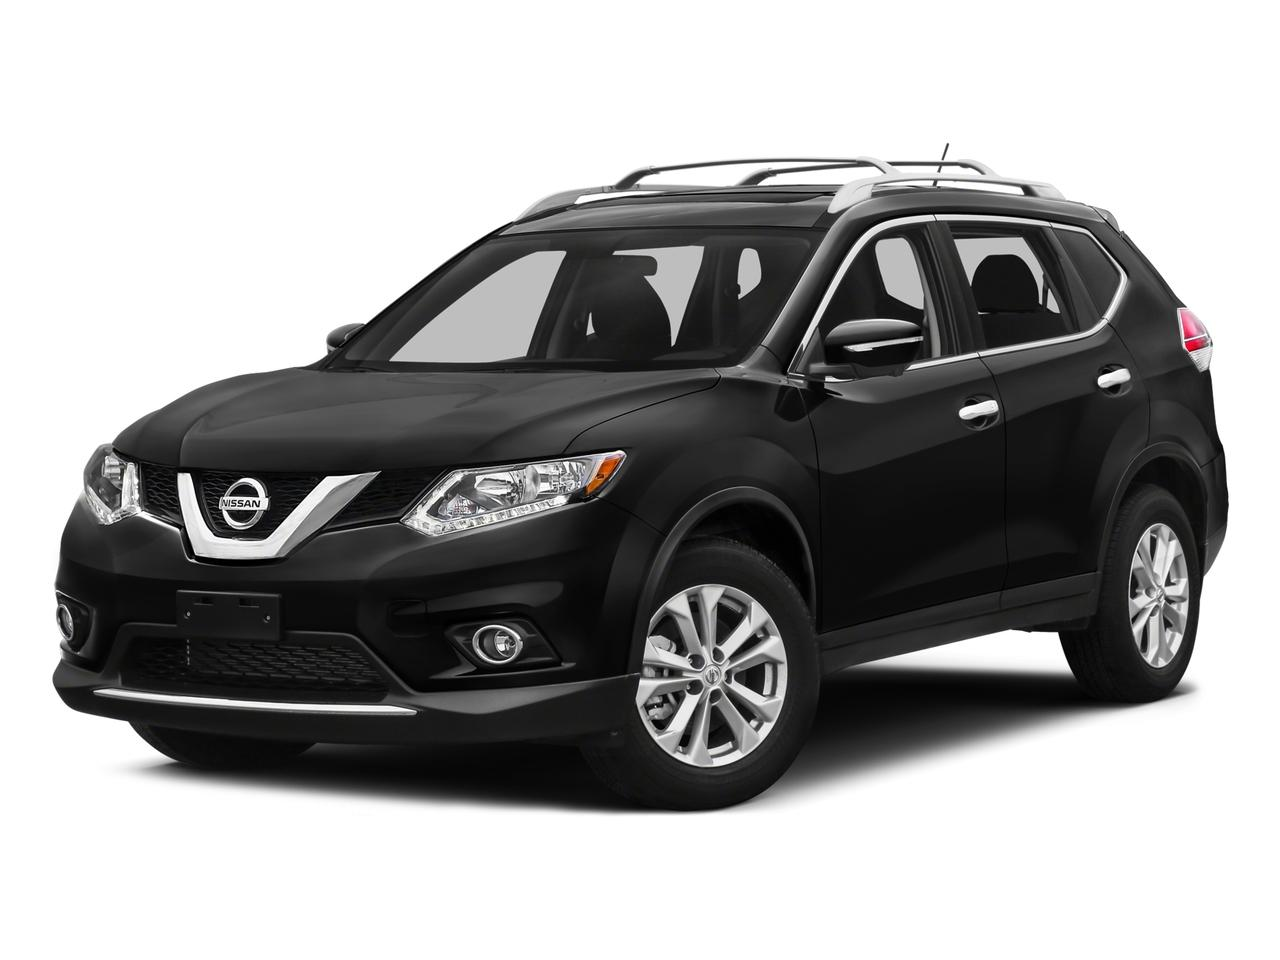 2016 Nissan Rogue Vehicle Photo in Evansville, IN 47715